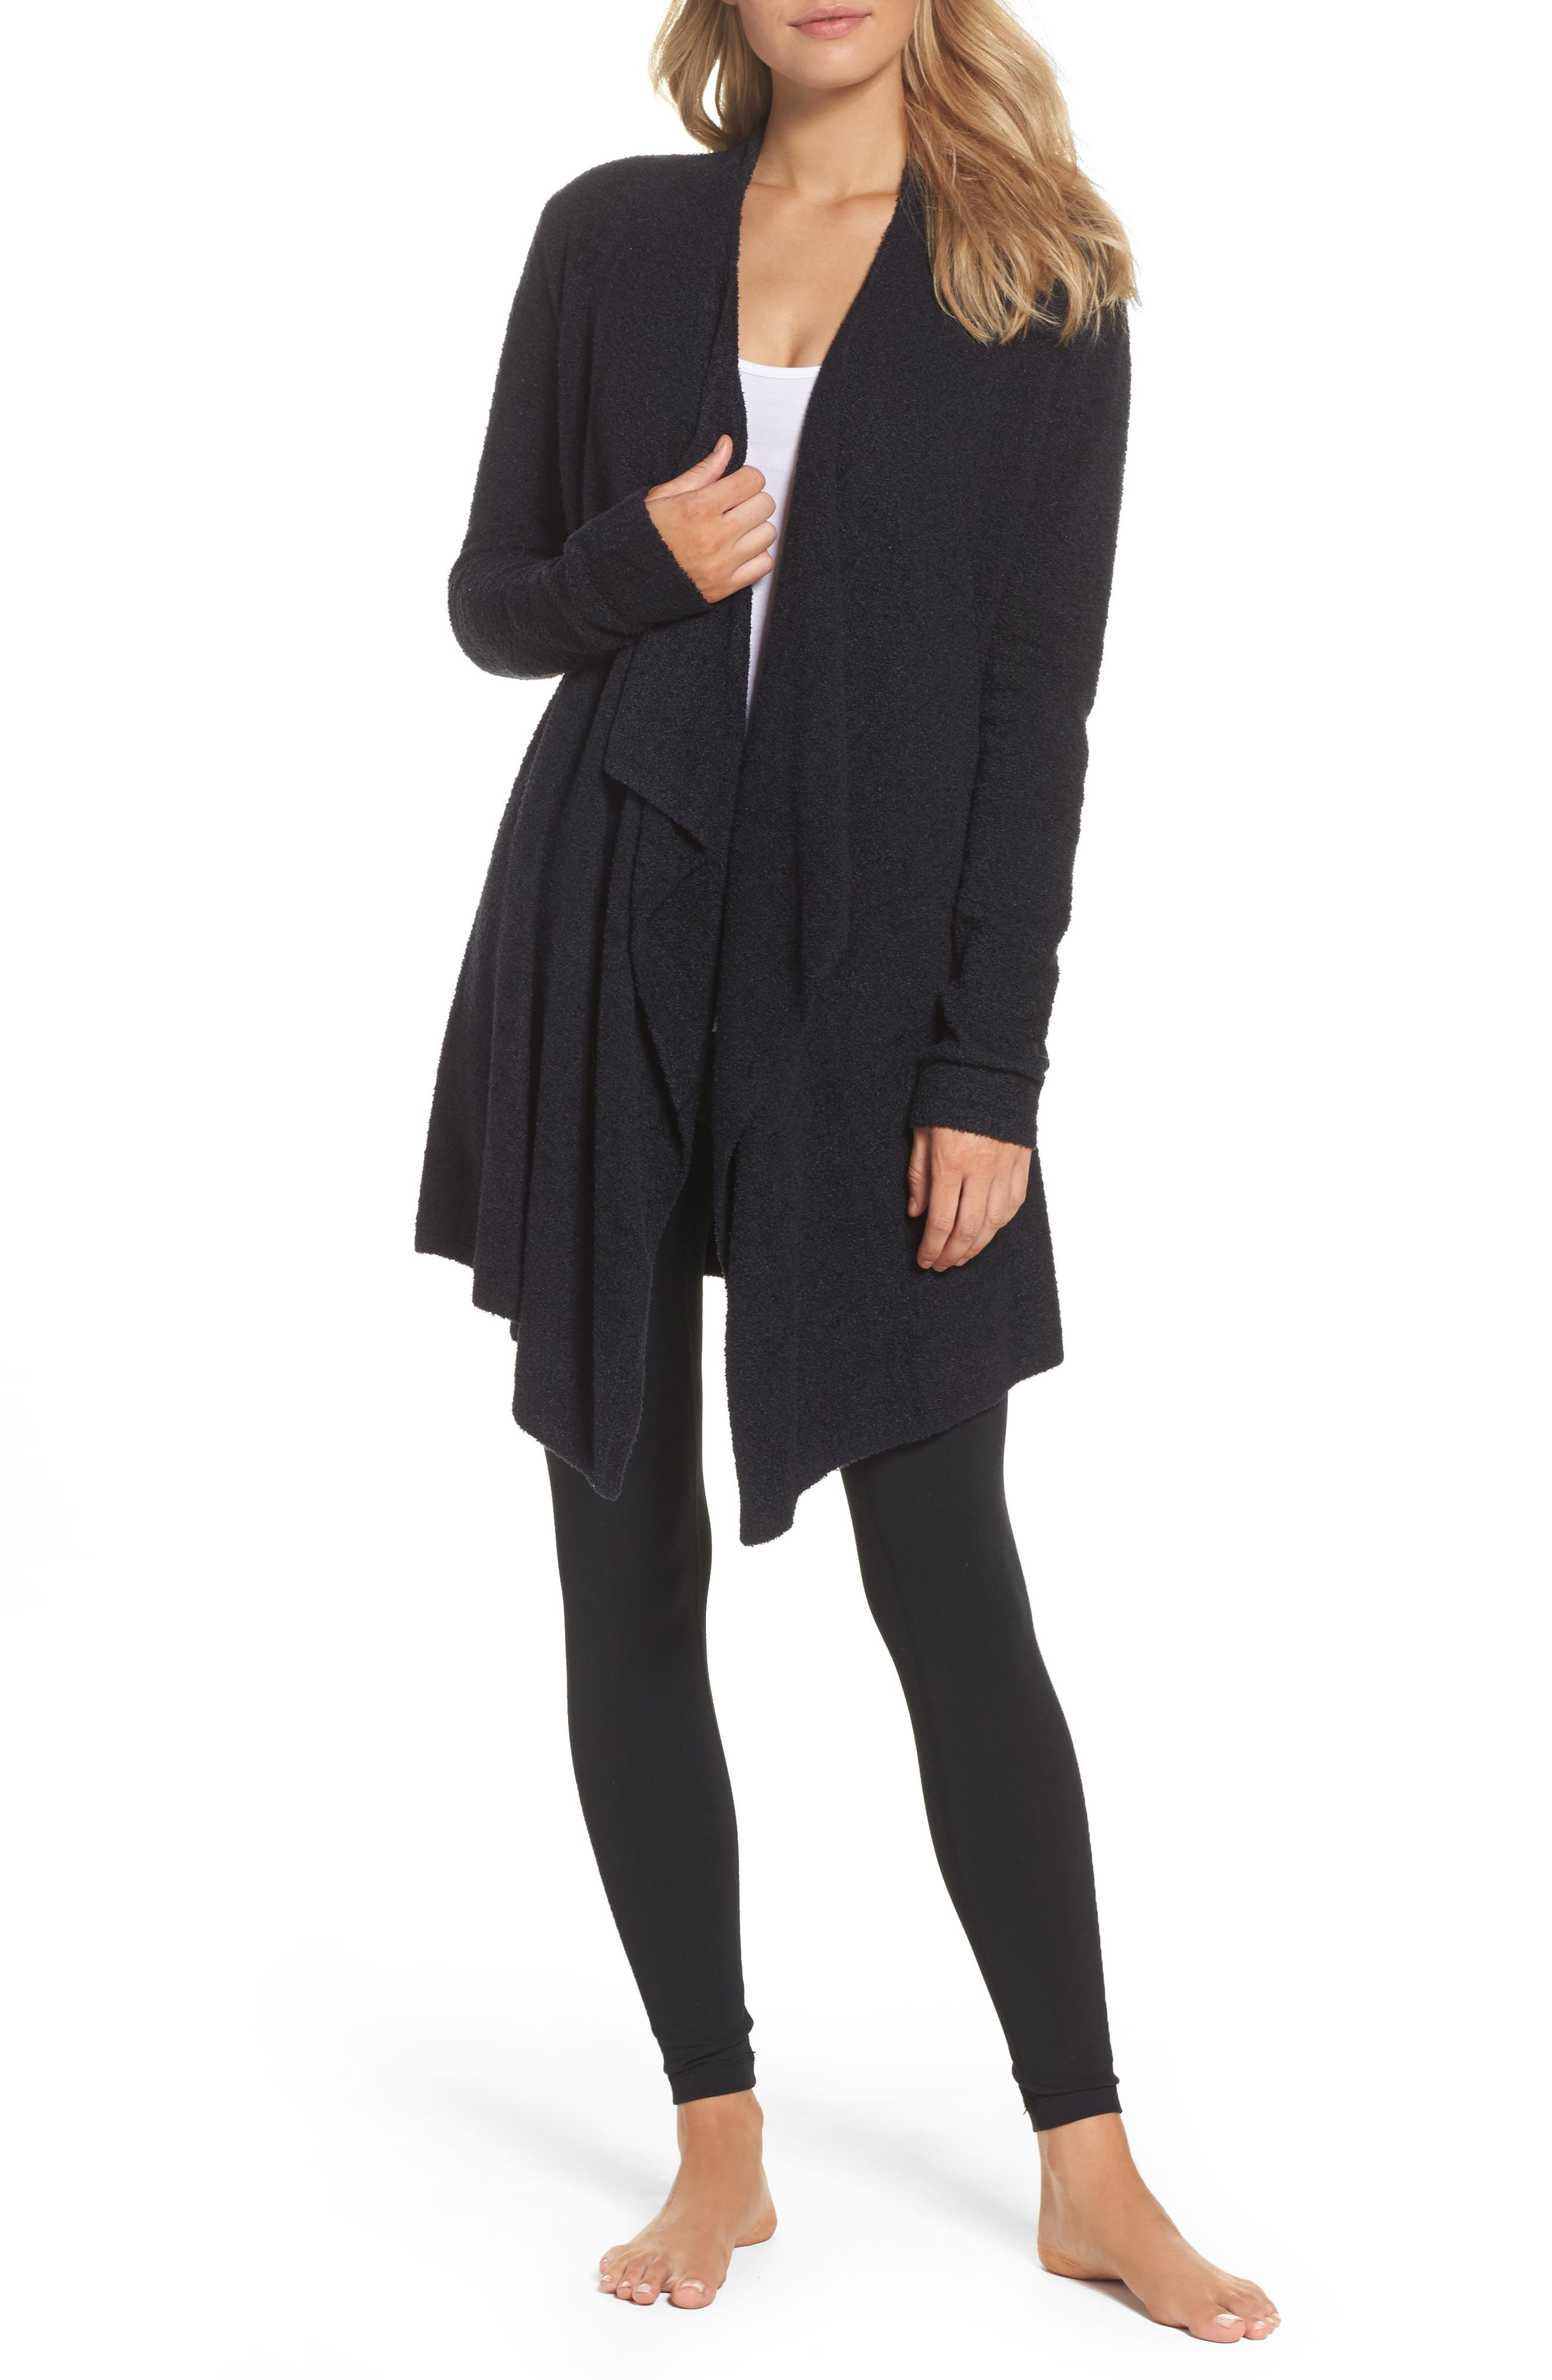 CozyChic Lite<sup>®</sup> Calypso Wrap Cardigan,                             Main thumbnail 1, color,                             BLACK